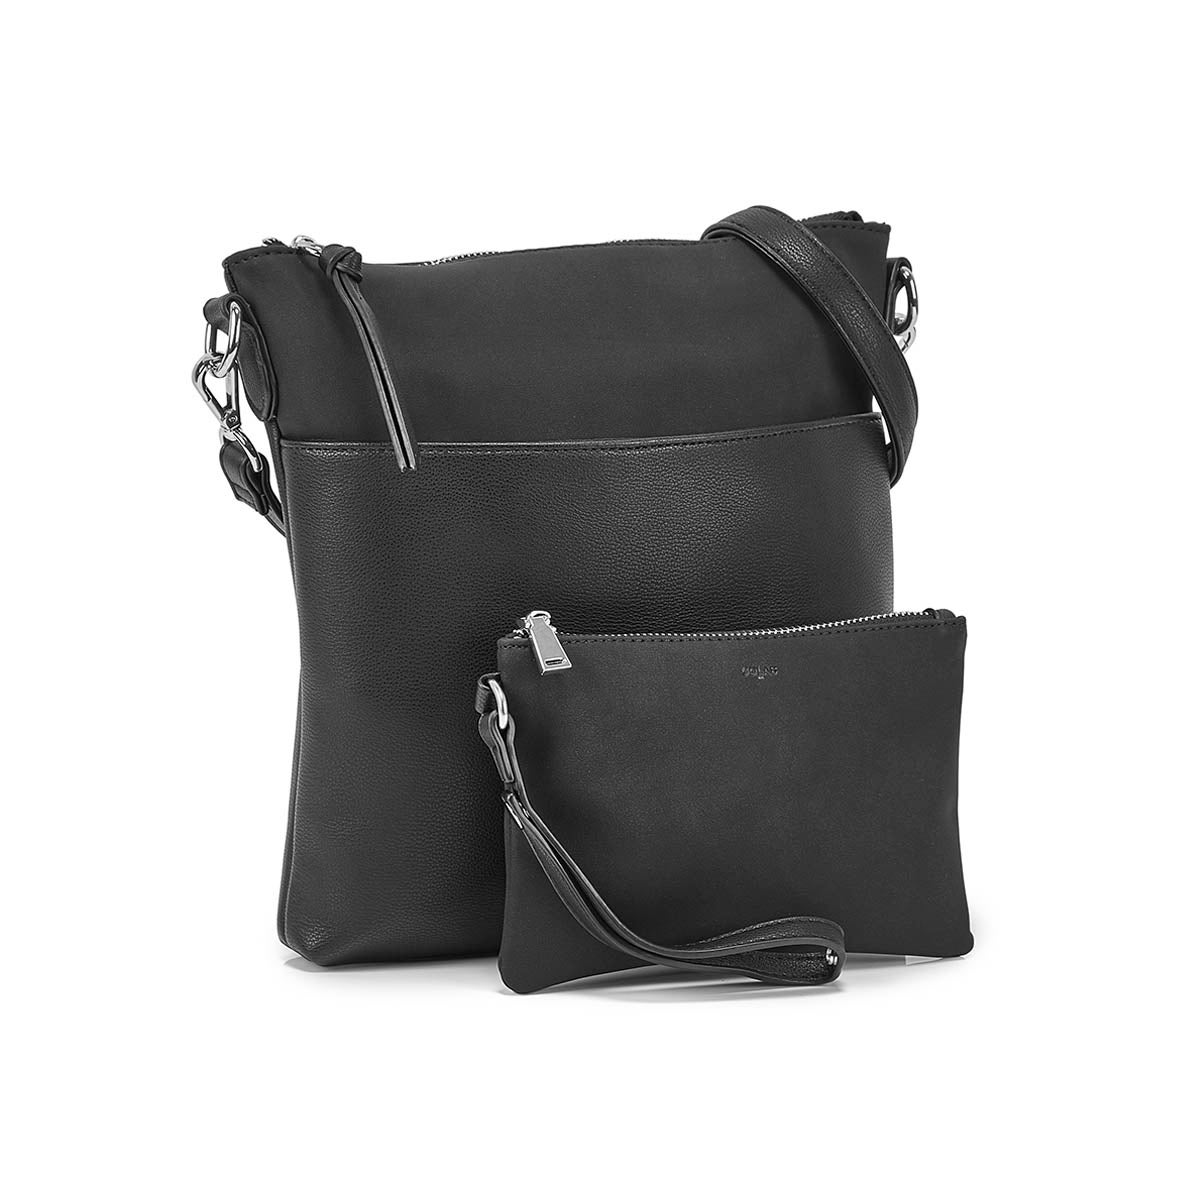 Lds black removable pouch crossbody bag